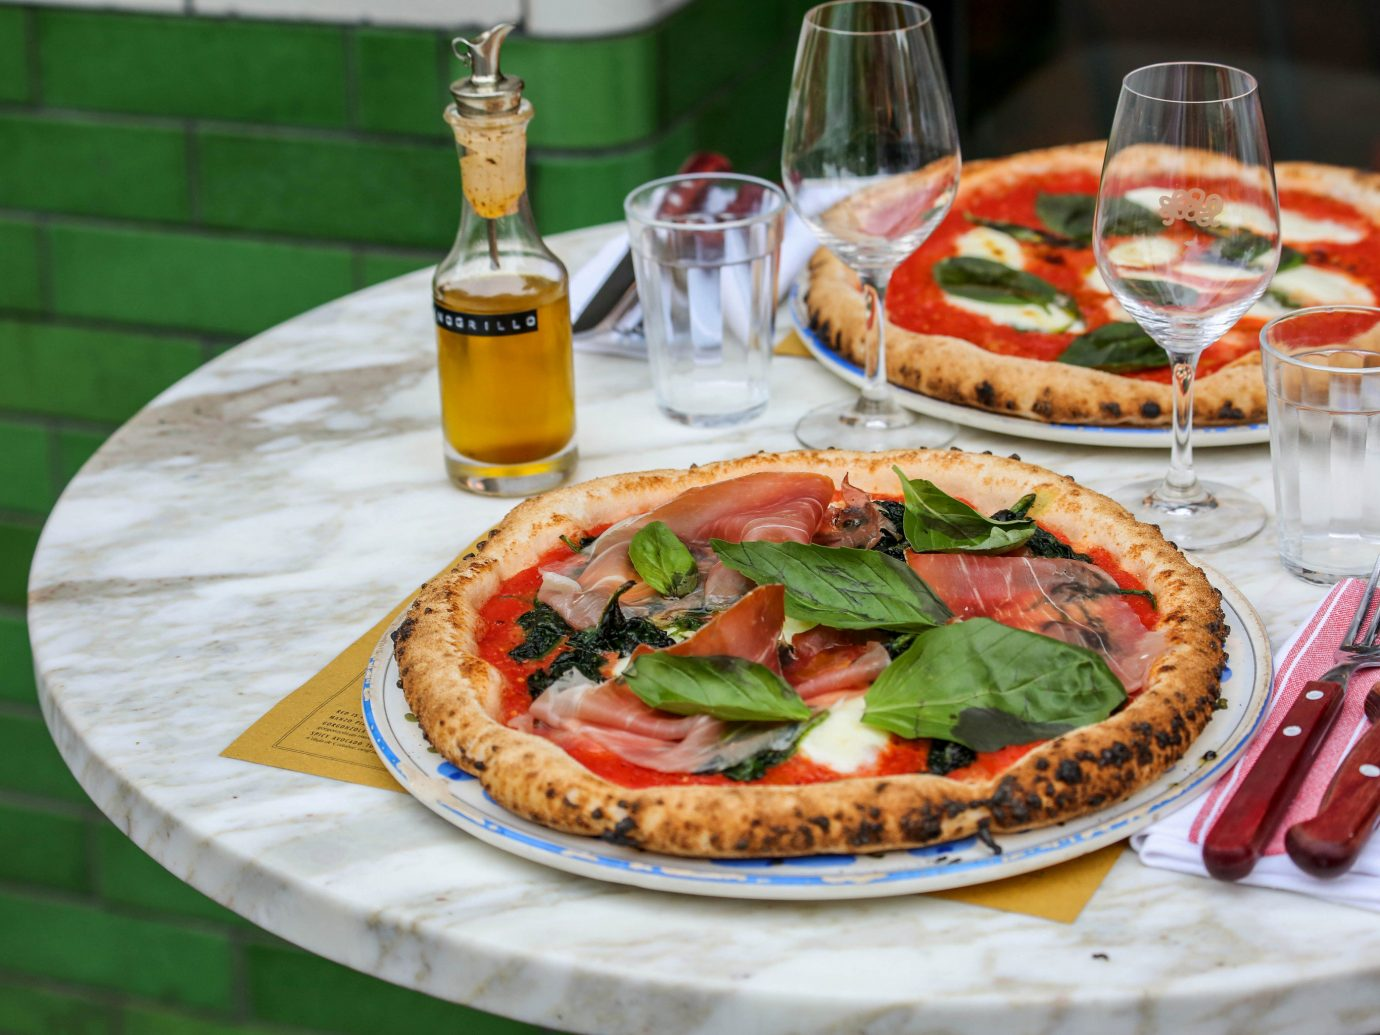 France Paris Trip Ideas food dish plate pizza cuisine meal italian food restaurant breakfast european food supper lunch